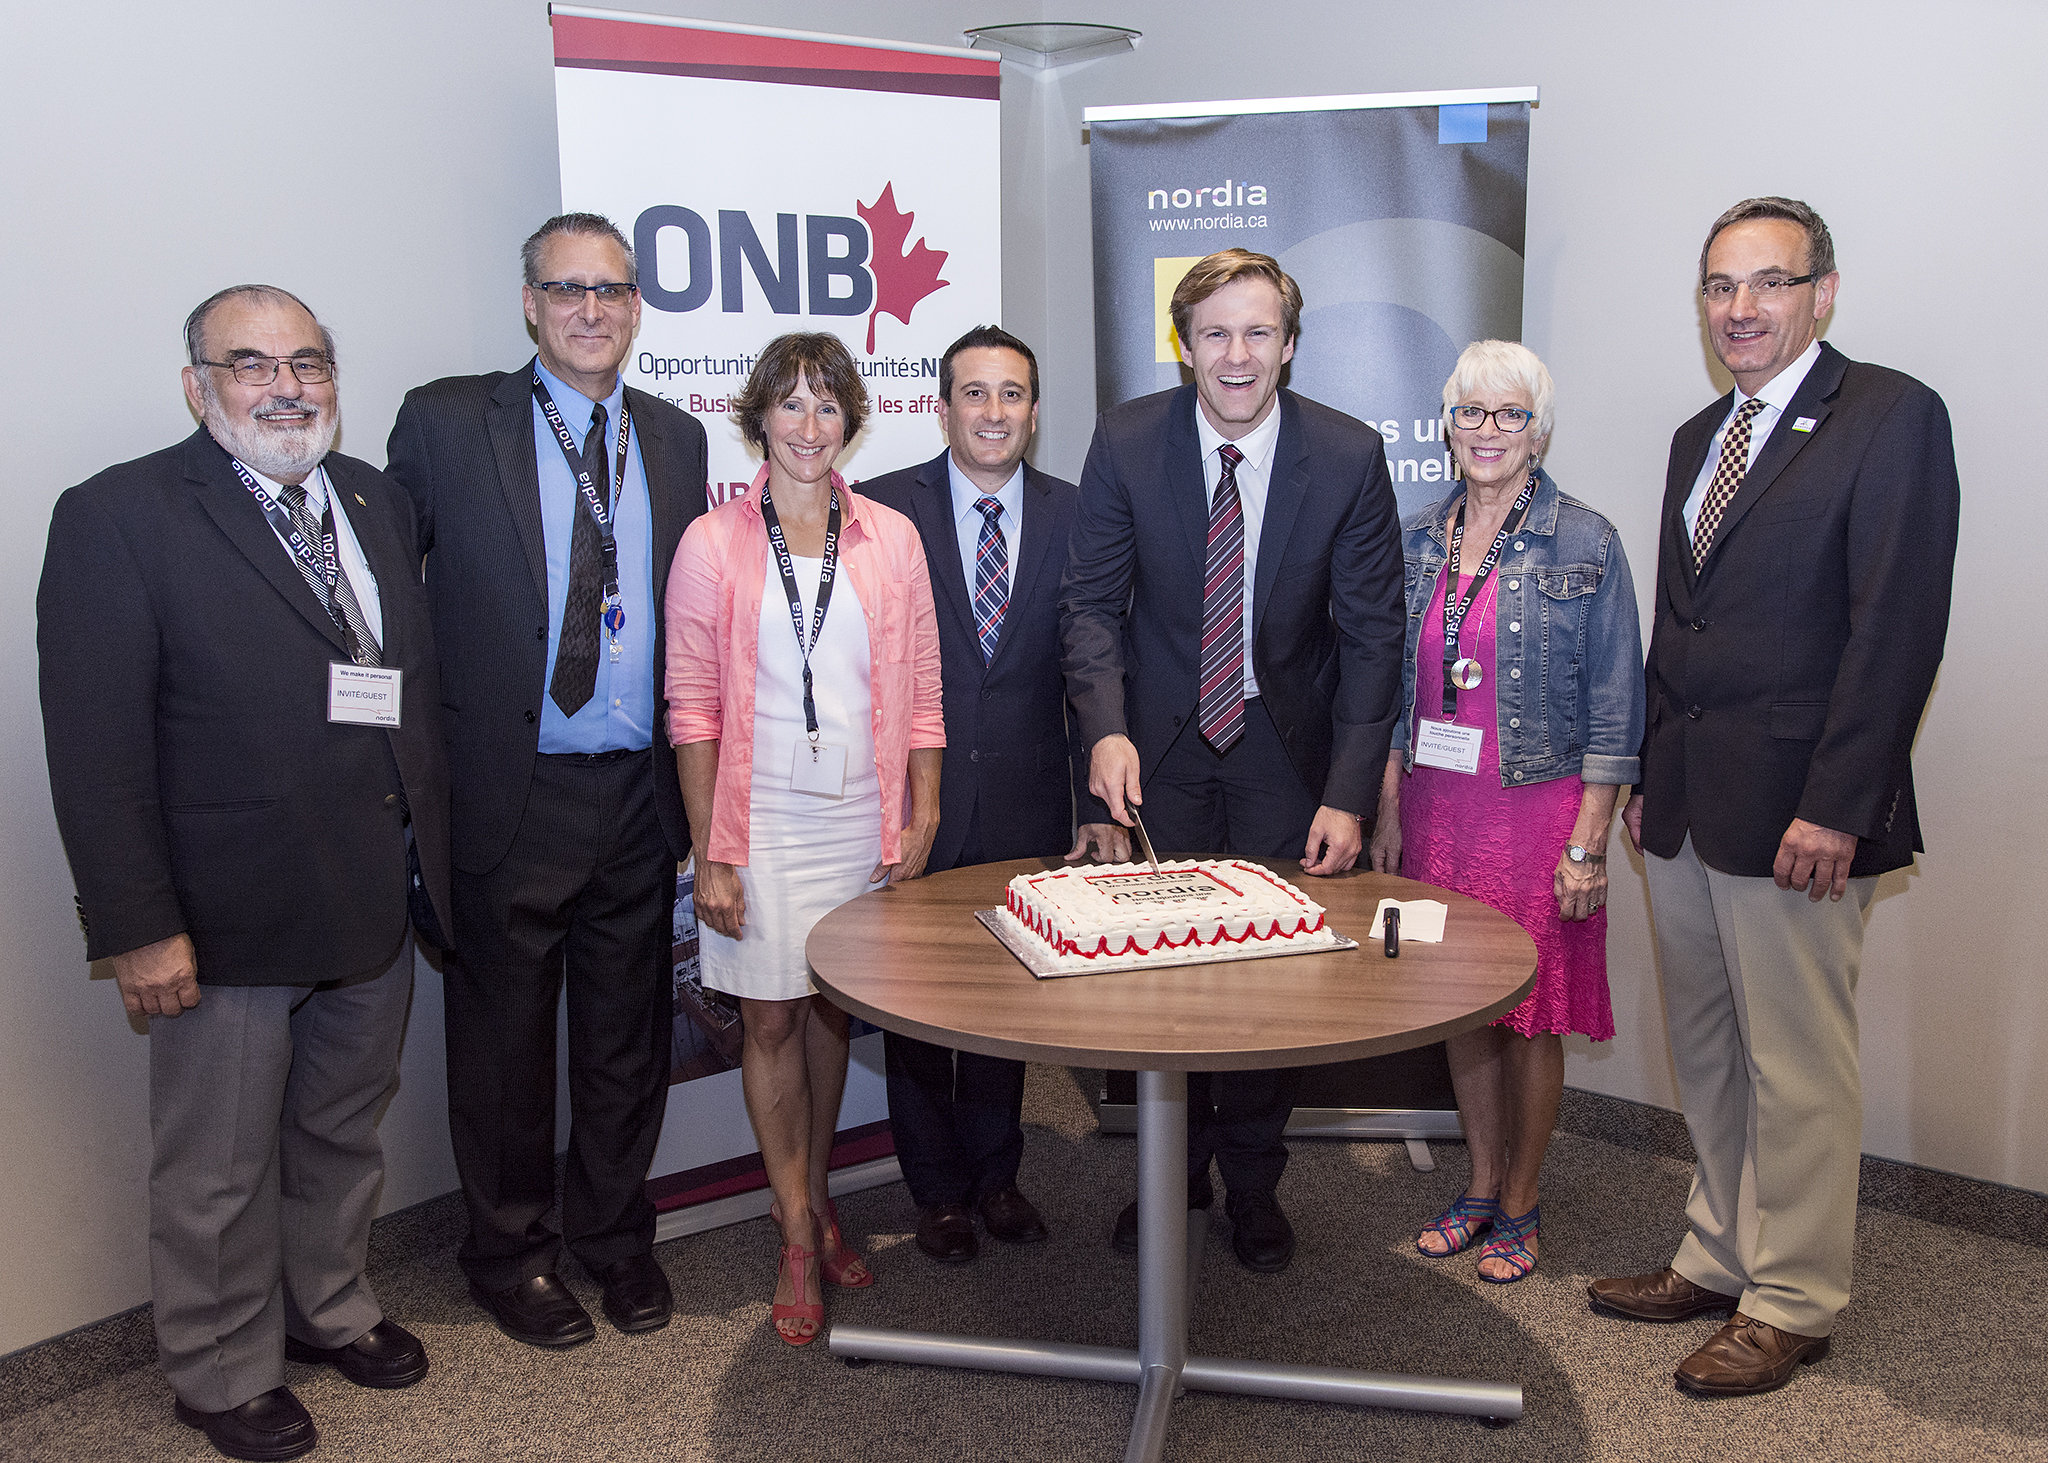 (from left), Jean Gaudet (Councilor, City of Dieppe), Dan Fraser (Moncton Site Director), Monique LeBlanc (MLA, Moncton East), President John DiNardo, Premier Gallant, Minister Rogers, Councillor Charles Leger